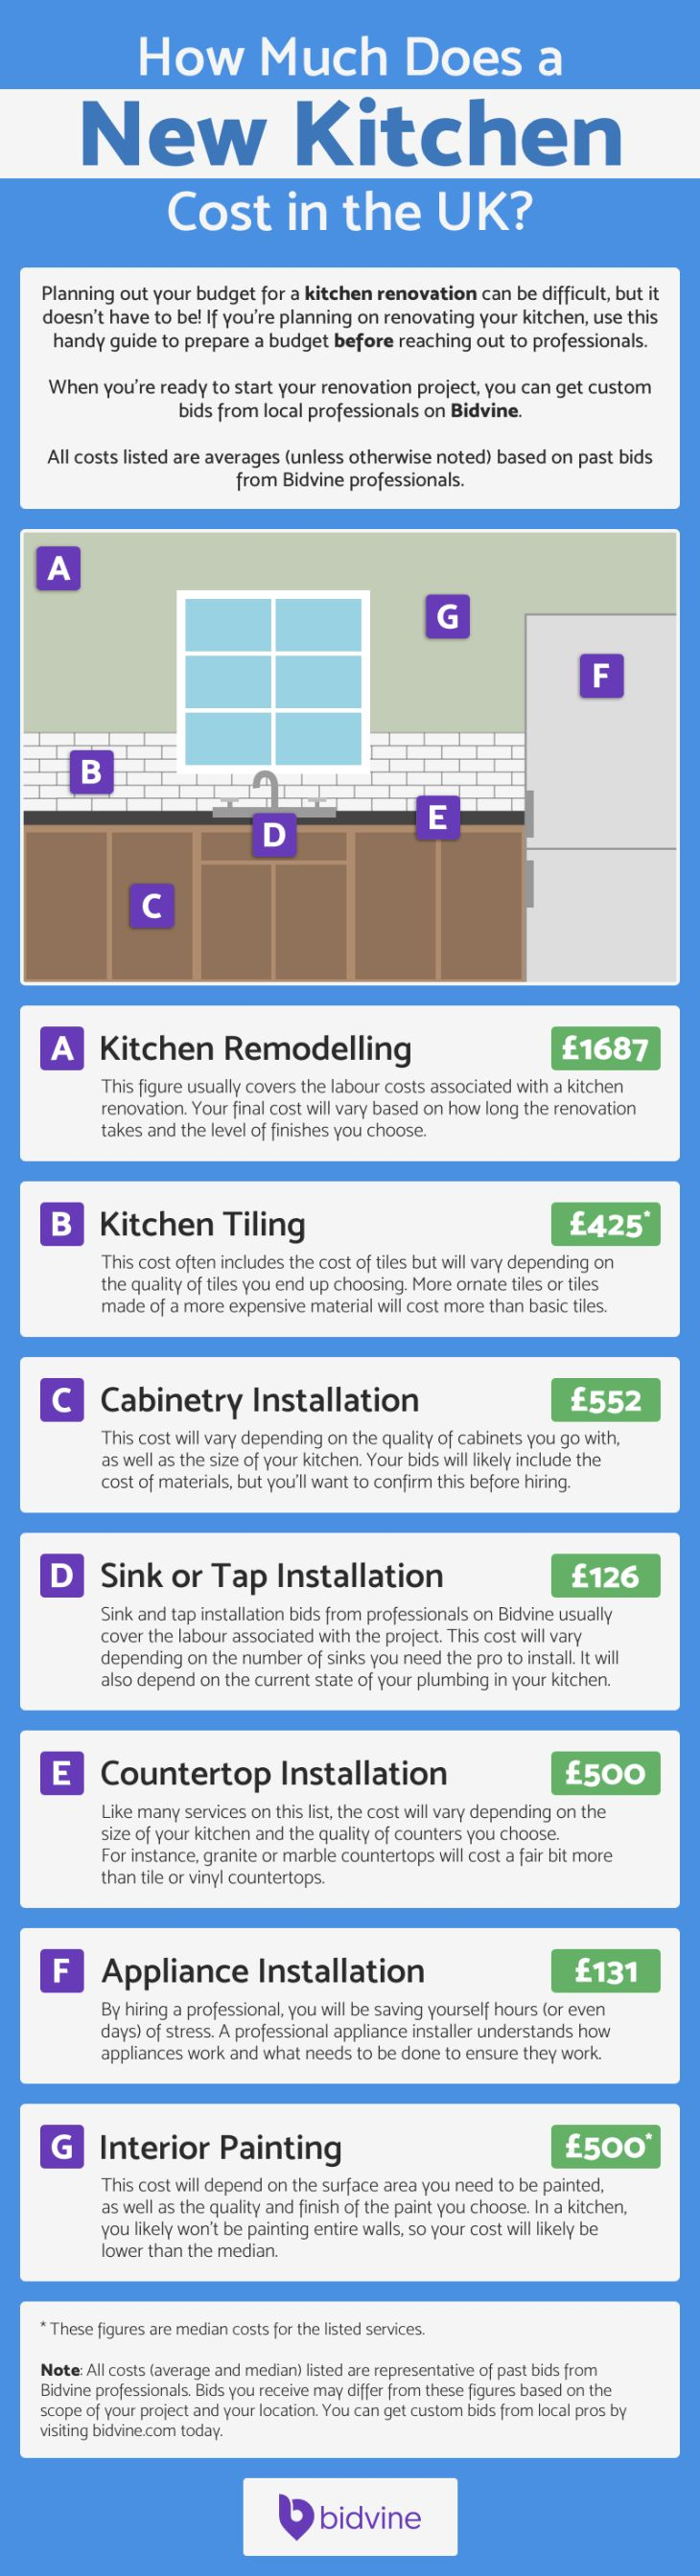 How Much Does a Beautiful New Kitchen Cost in the UK?